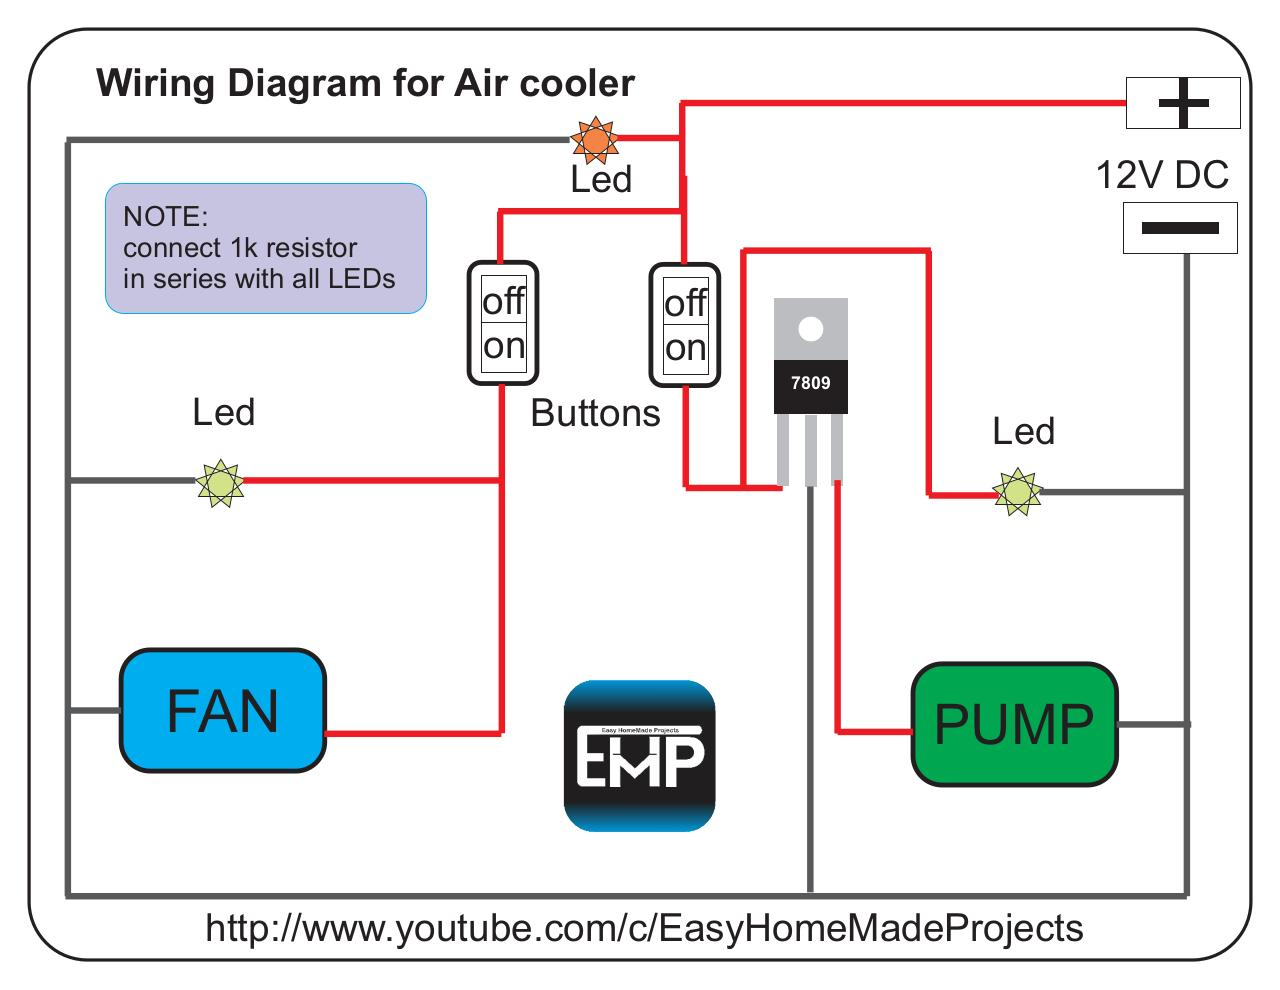 wiring cdr wiring diagram for mini air cooler pdf pdf archive